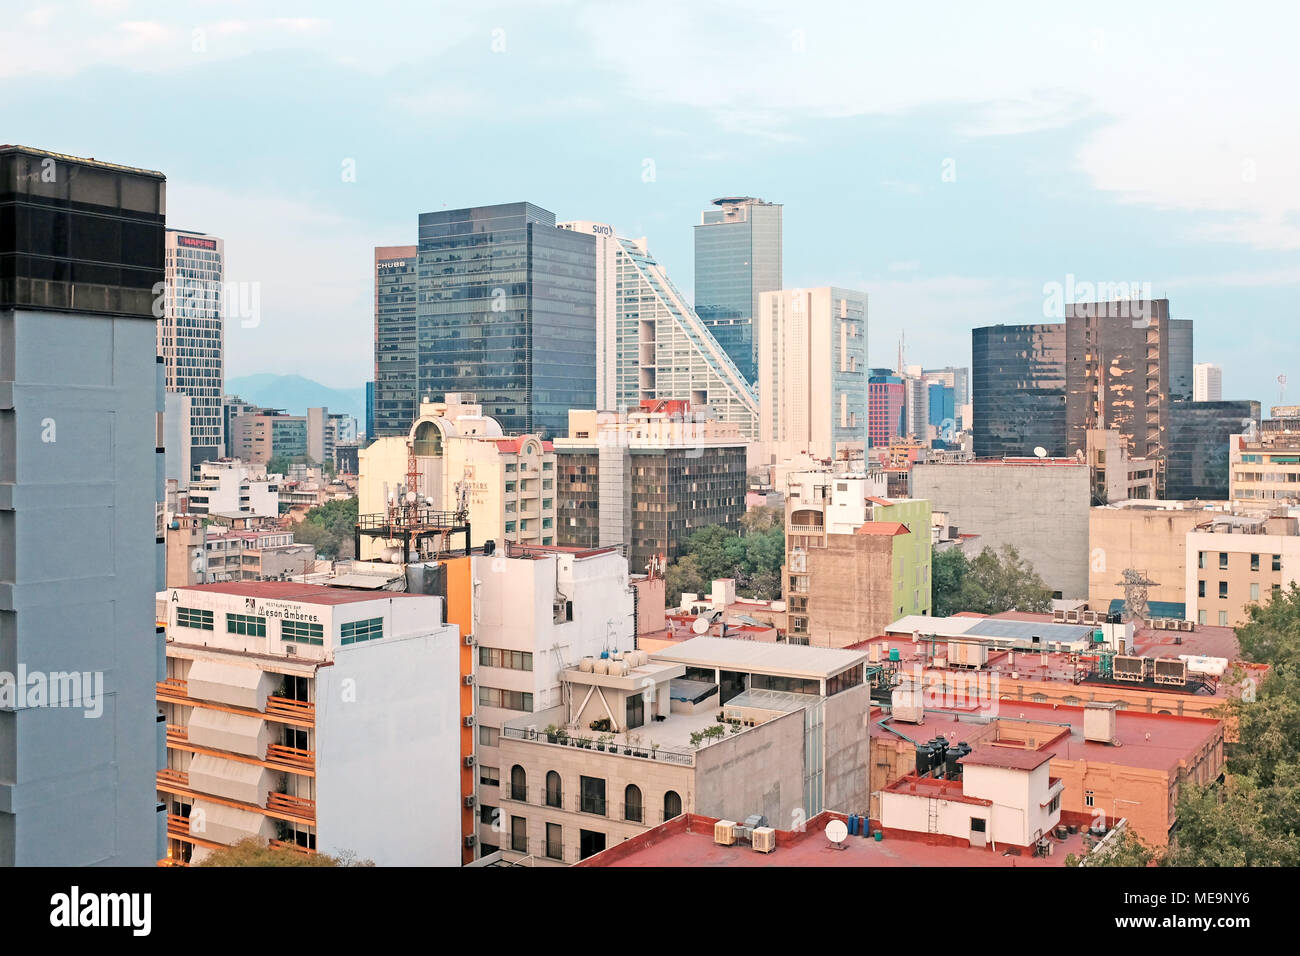 Zona Rosa in the foreground with the financial district in the distance in Mexico City, Mexico in 2018. - Stock Image